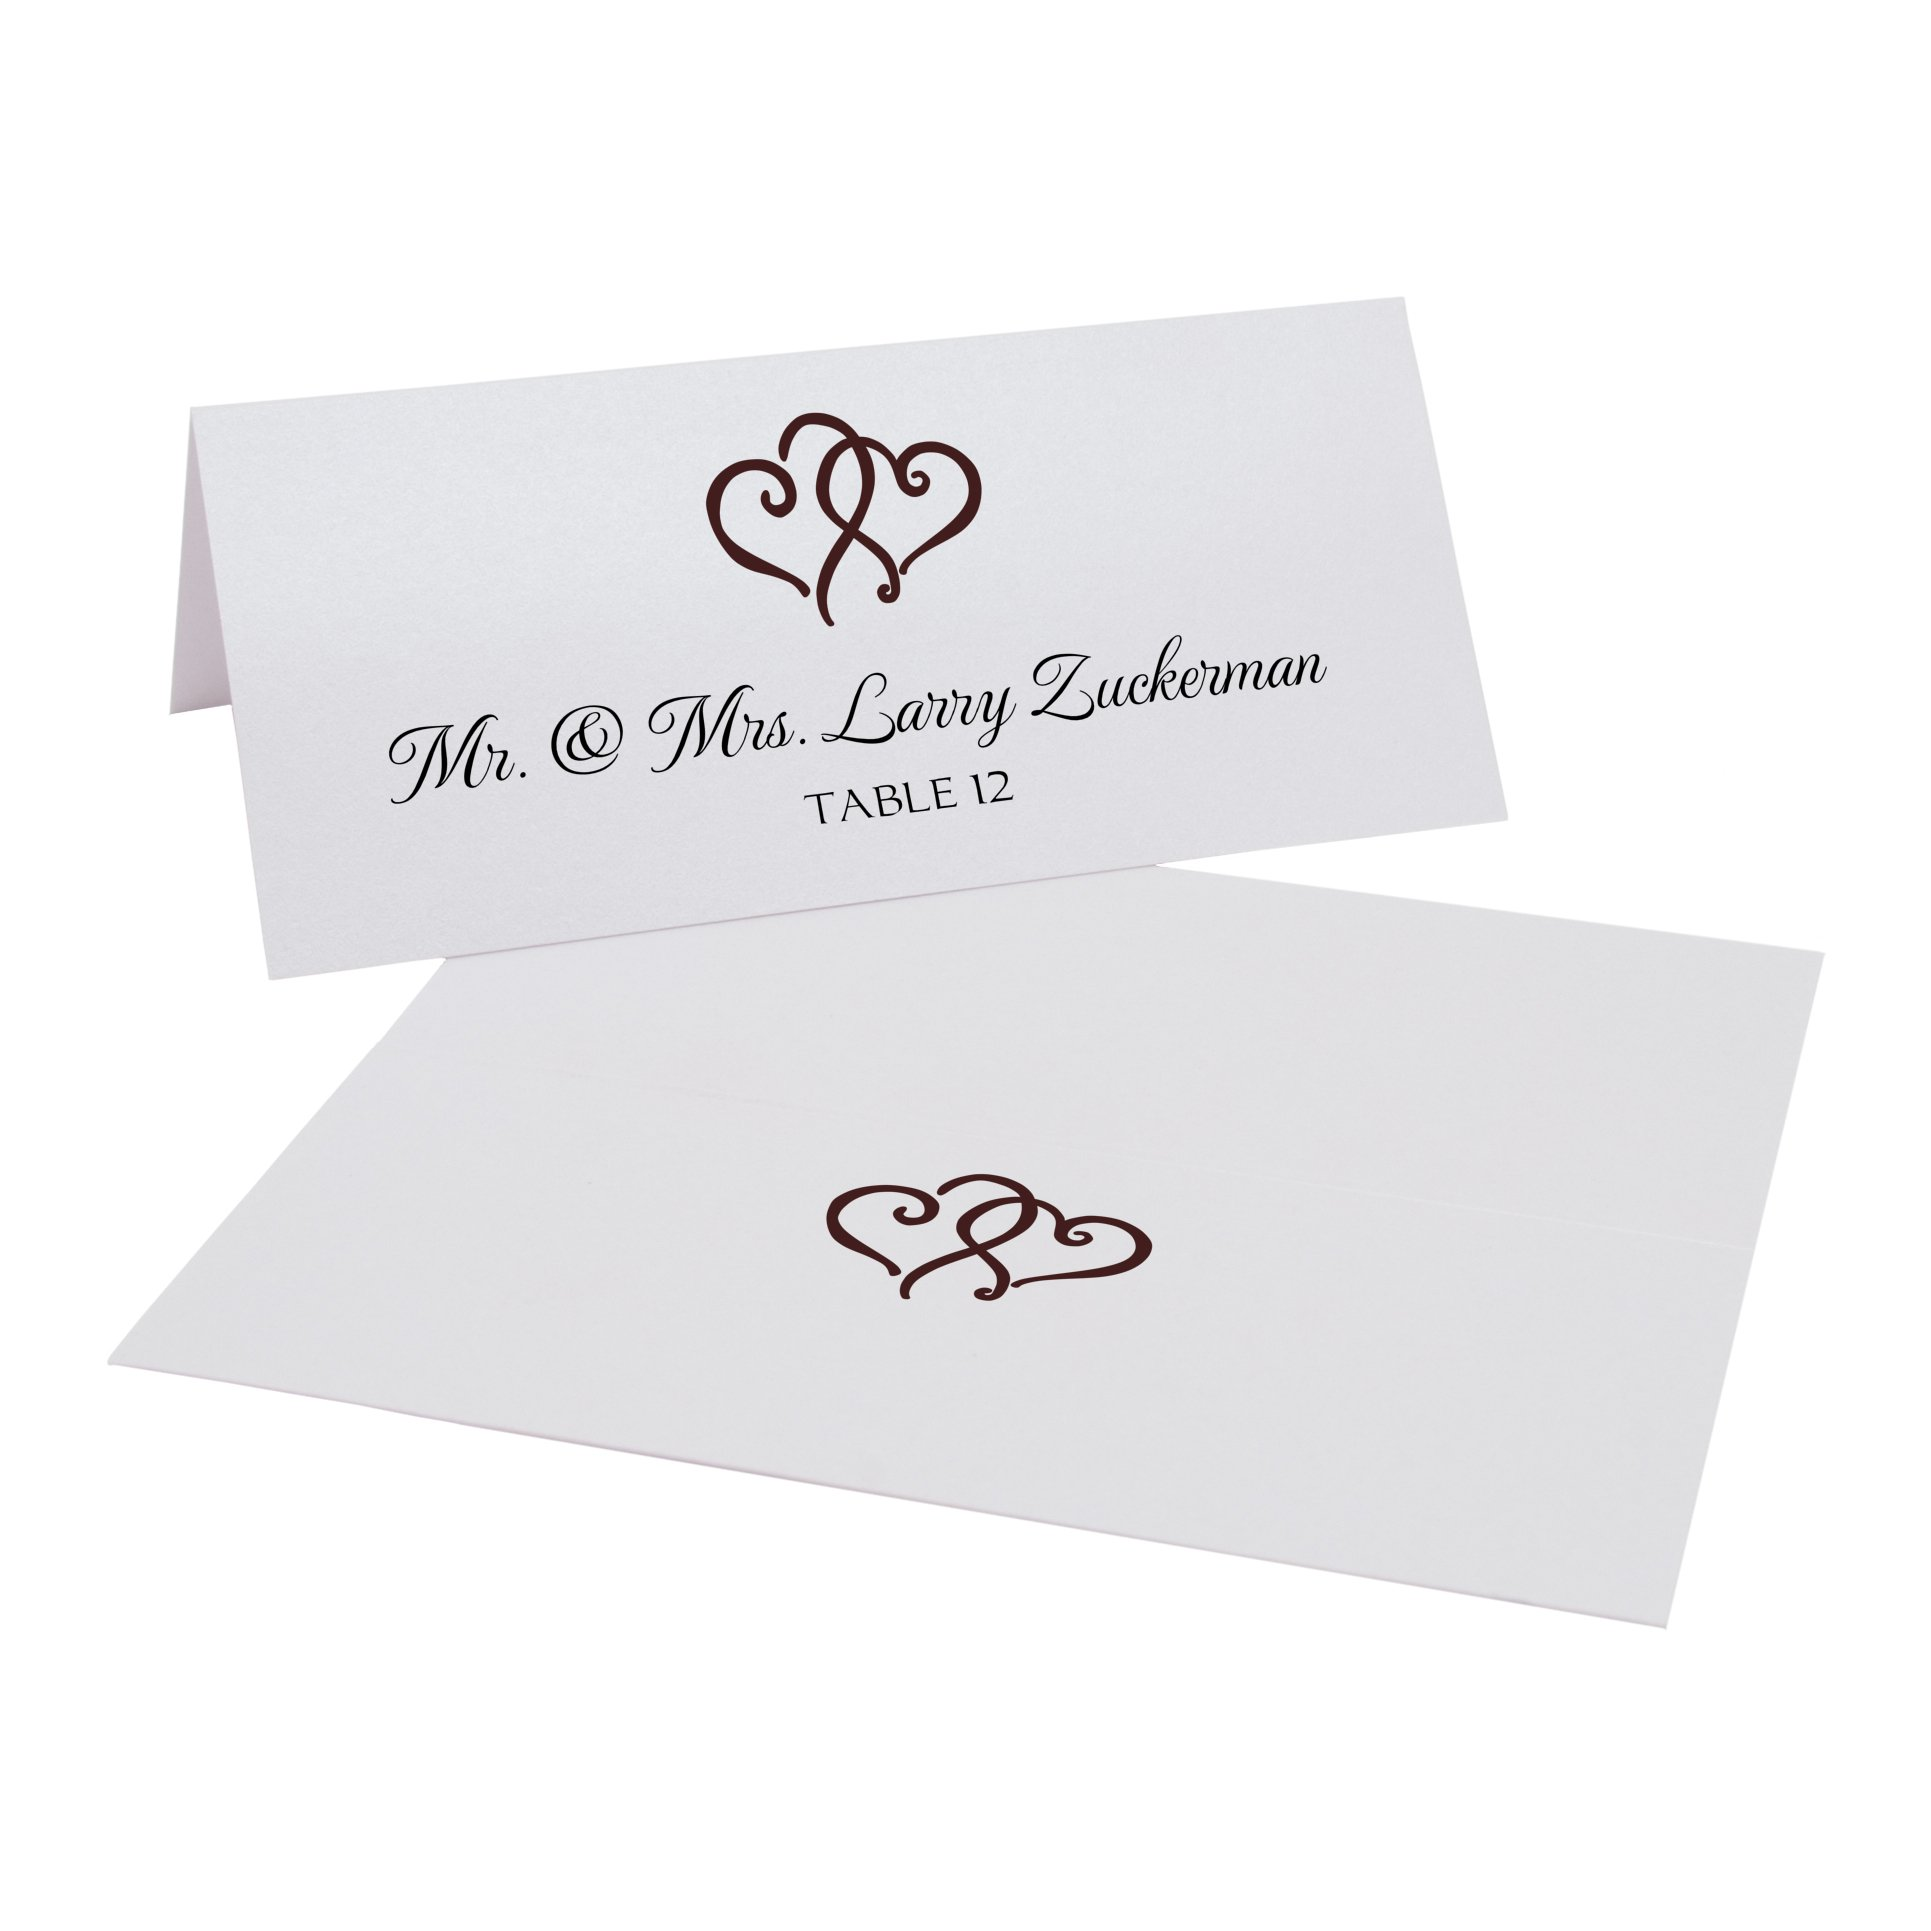 Linked Hearts Place Cards, Pearl White, Chocolate, Set of 375 by Documents and Designs